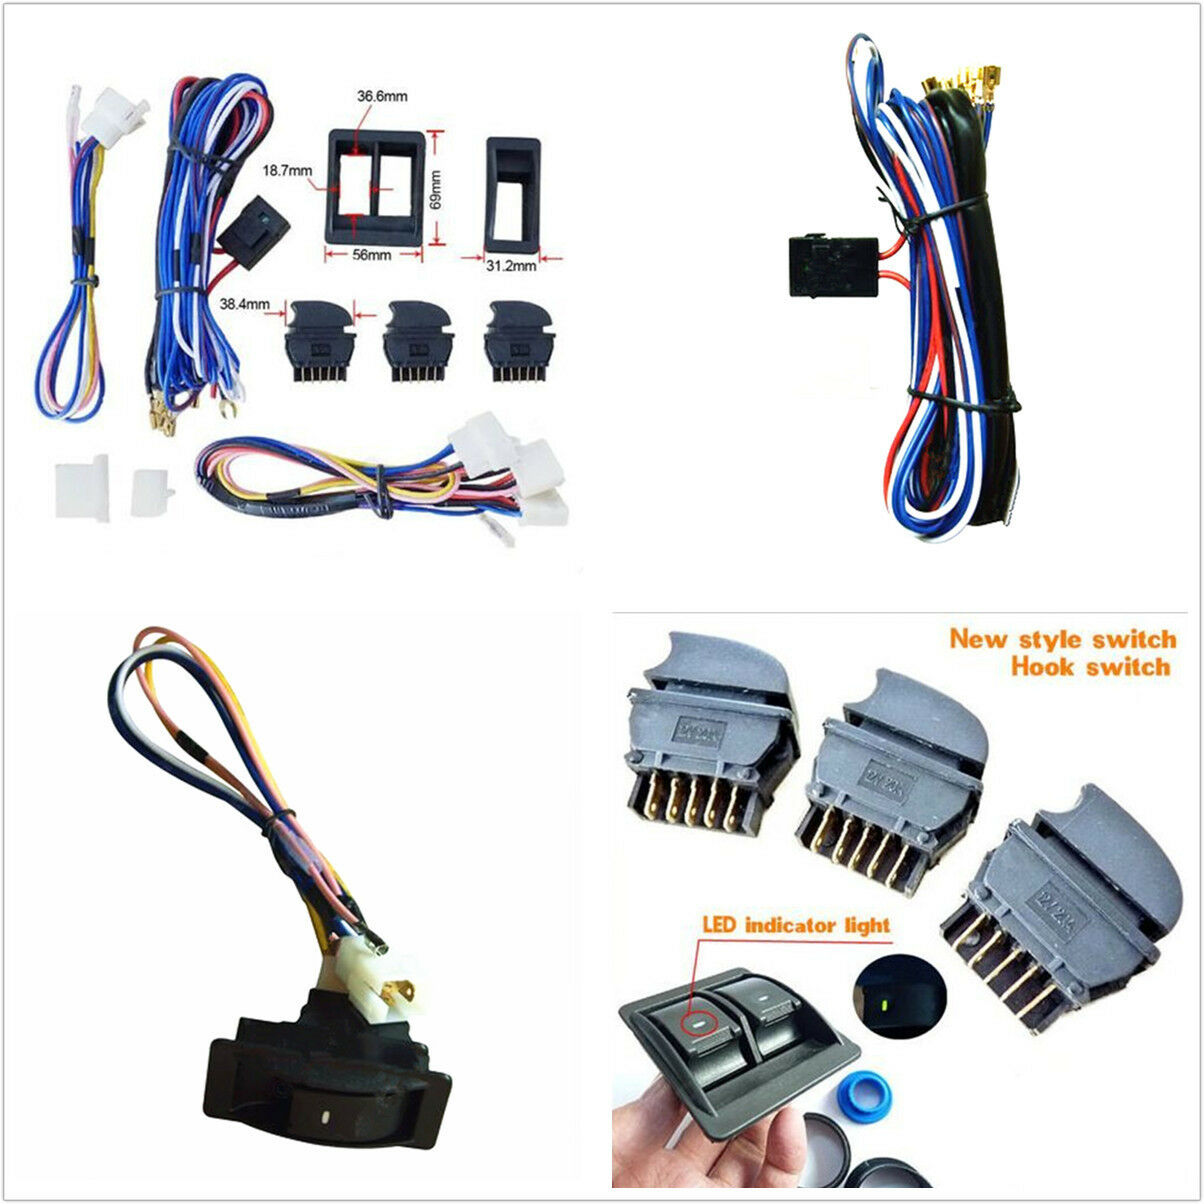 Top Quality Universal 12v Car Electric Power Window Switch With Wire Wiring Harness For Kit 1 Of 8free Shipping